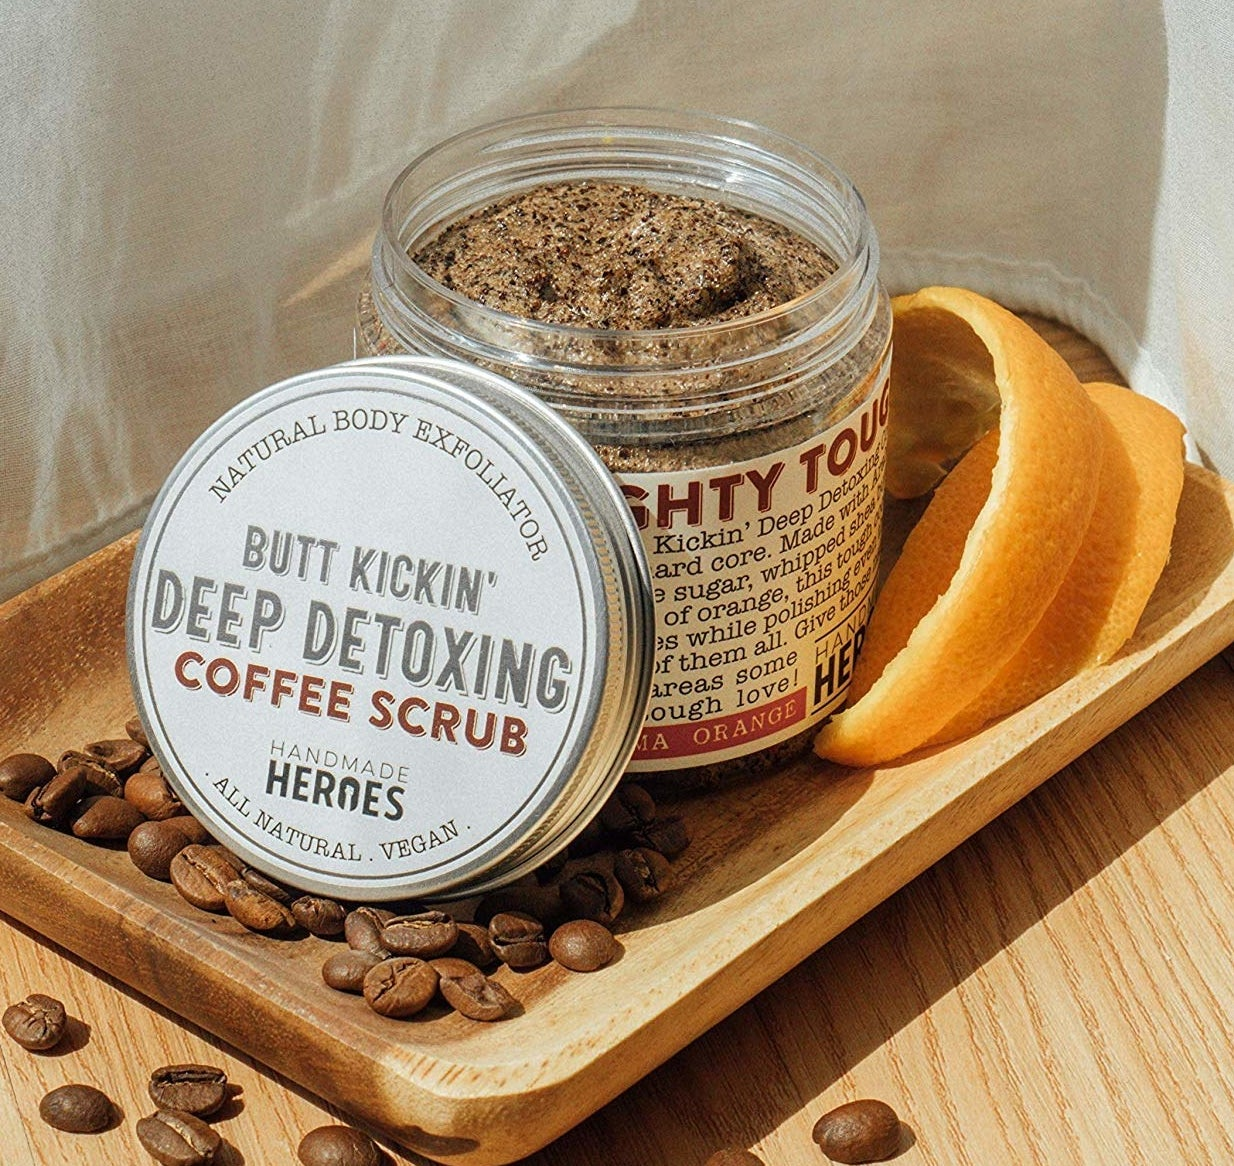 "Promising review: ""This coffee scrub has the most amazing, invigorating scent that really wakes you up during your morning shower! Smells like a nice fresh pot of coffee! It is the perfect amount of coarse because it feels like it is really exfoliating your body, but it does not hurt or leave your skin red. The coffee sent does not linger on your skin too long (I was nervous it might mix weird with my perfume). As soon as I dried off, the scent went away and I was left with soft, smooth skin!"" —Sandra E. SwiertzGet it from Amazon for $9.90."